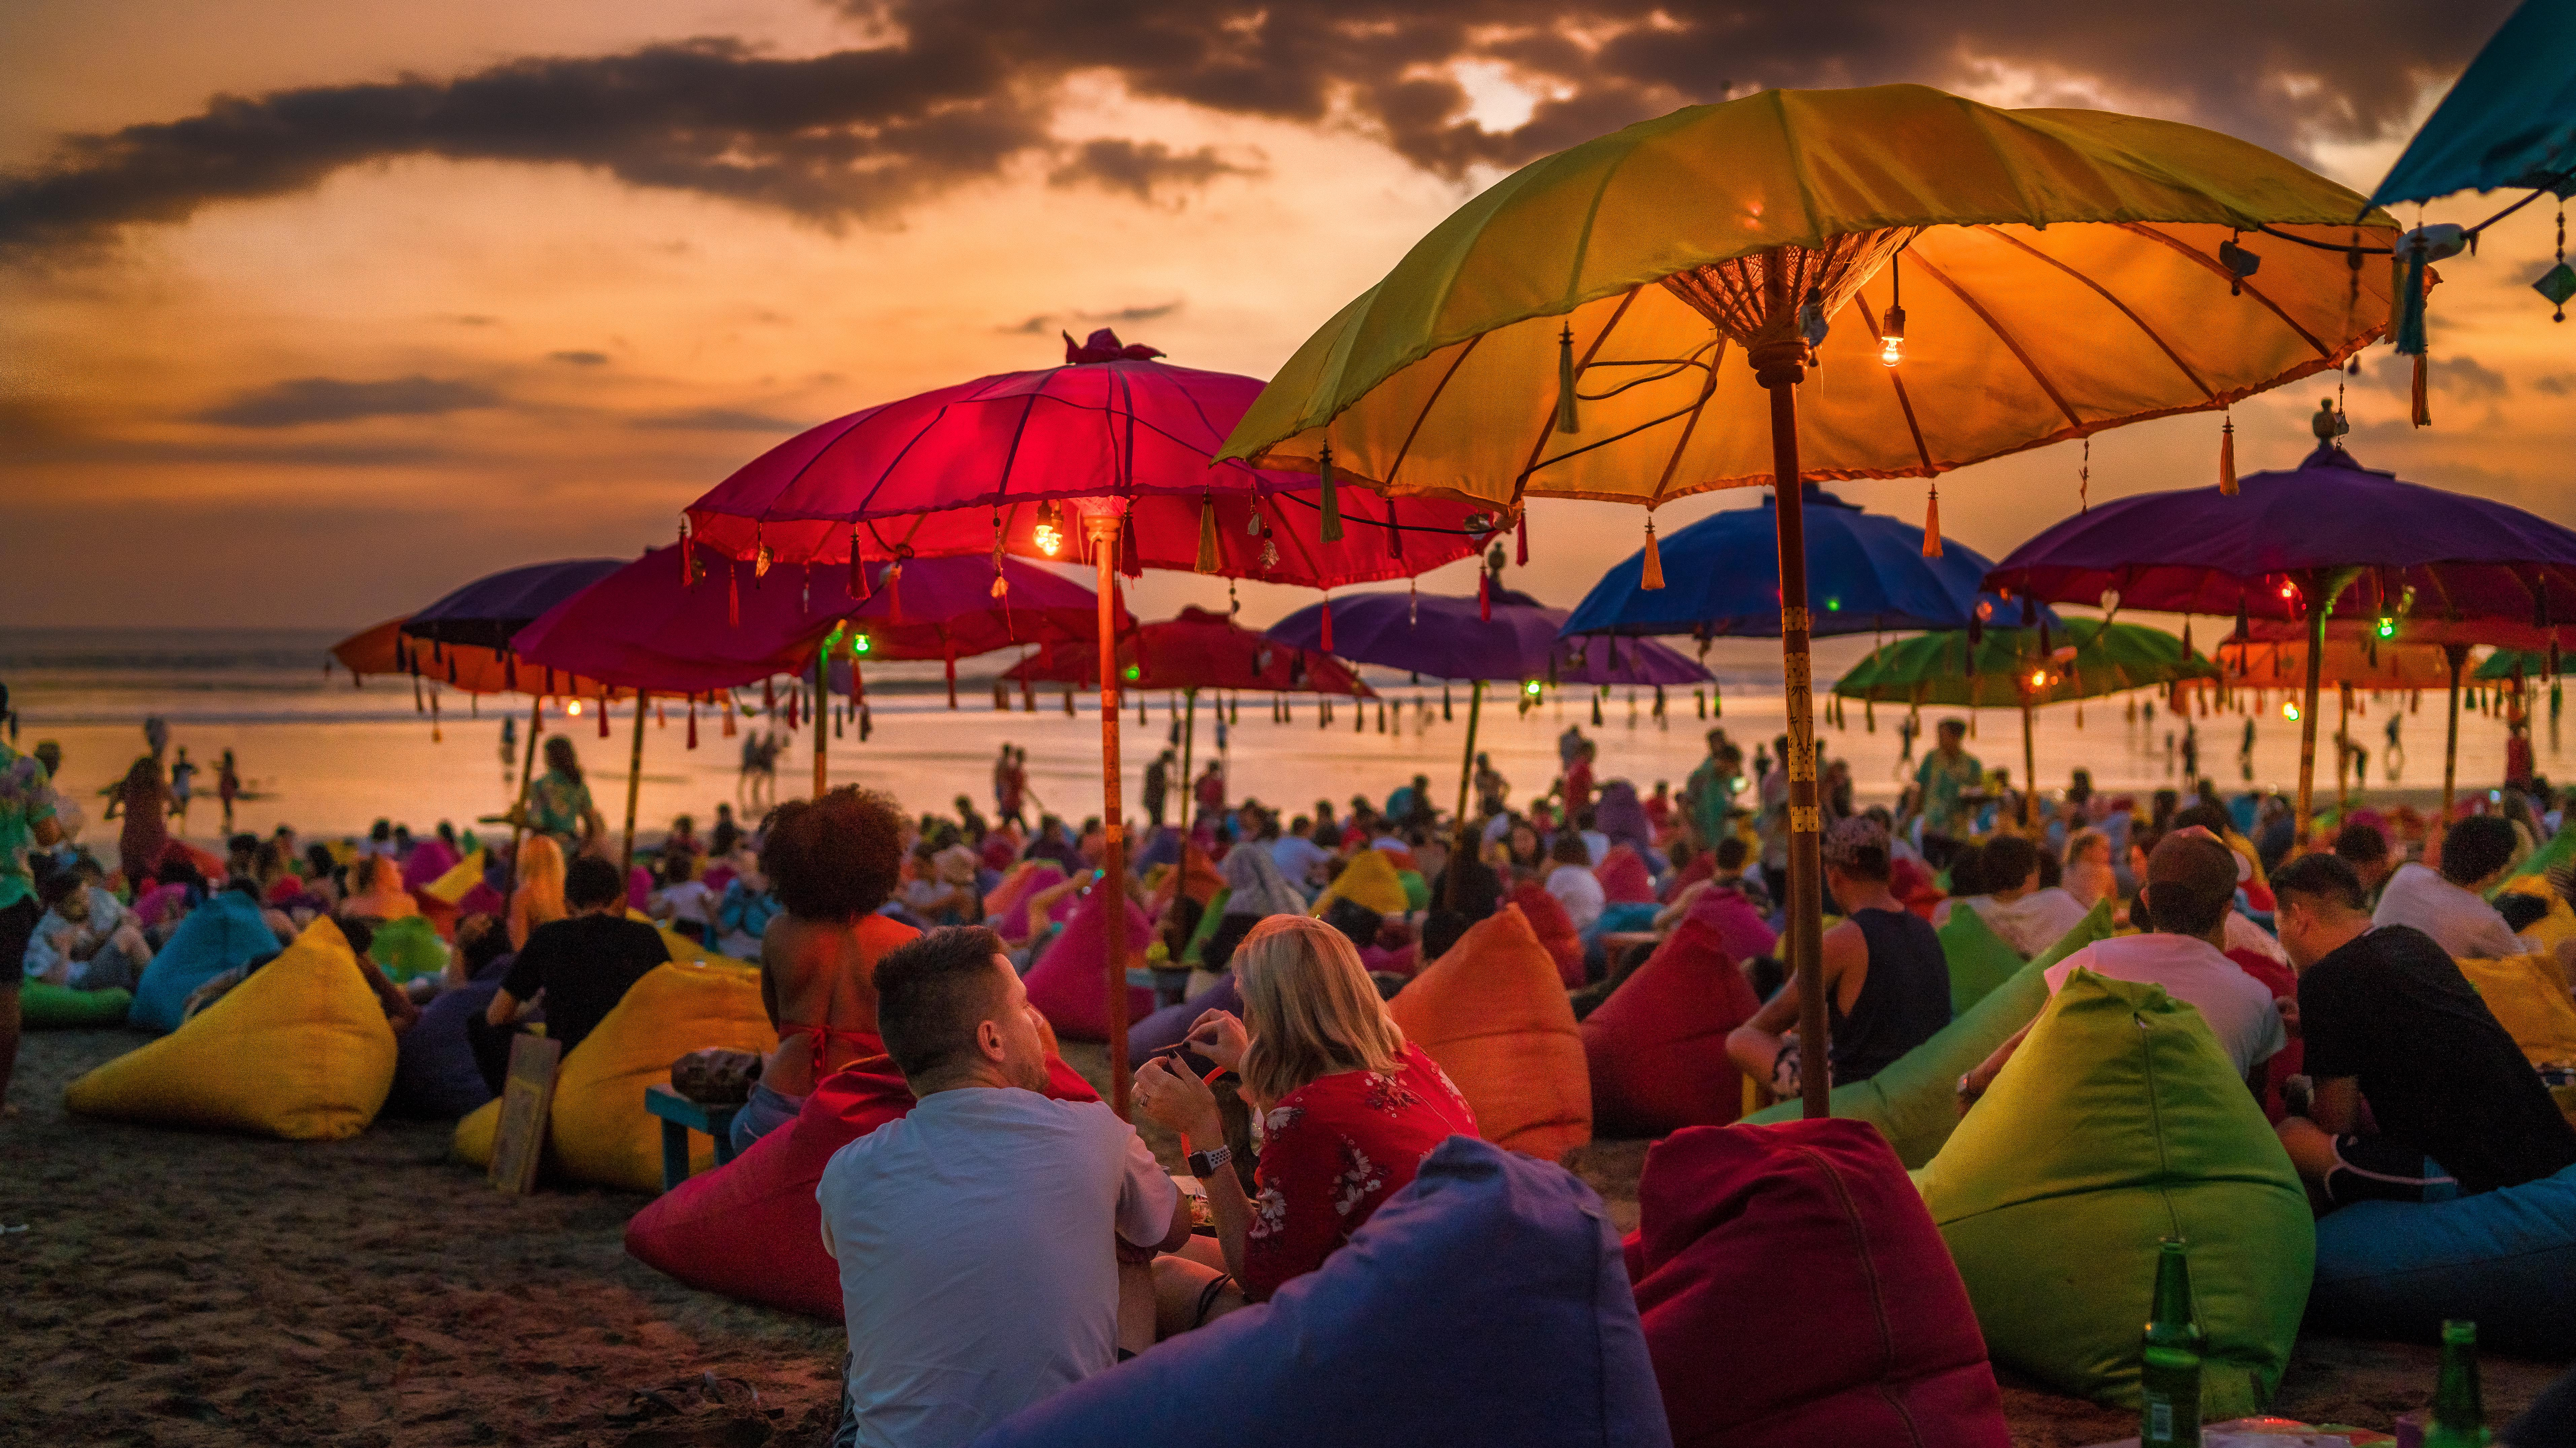 Crowded tourists relaxing on the beach at dusk in Bali, Indonesia